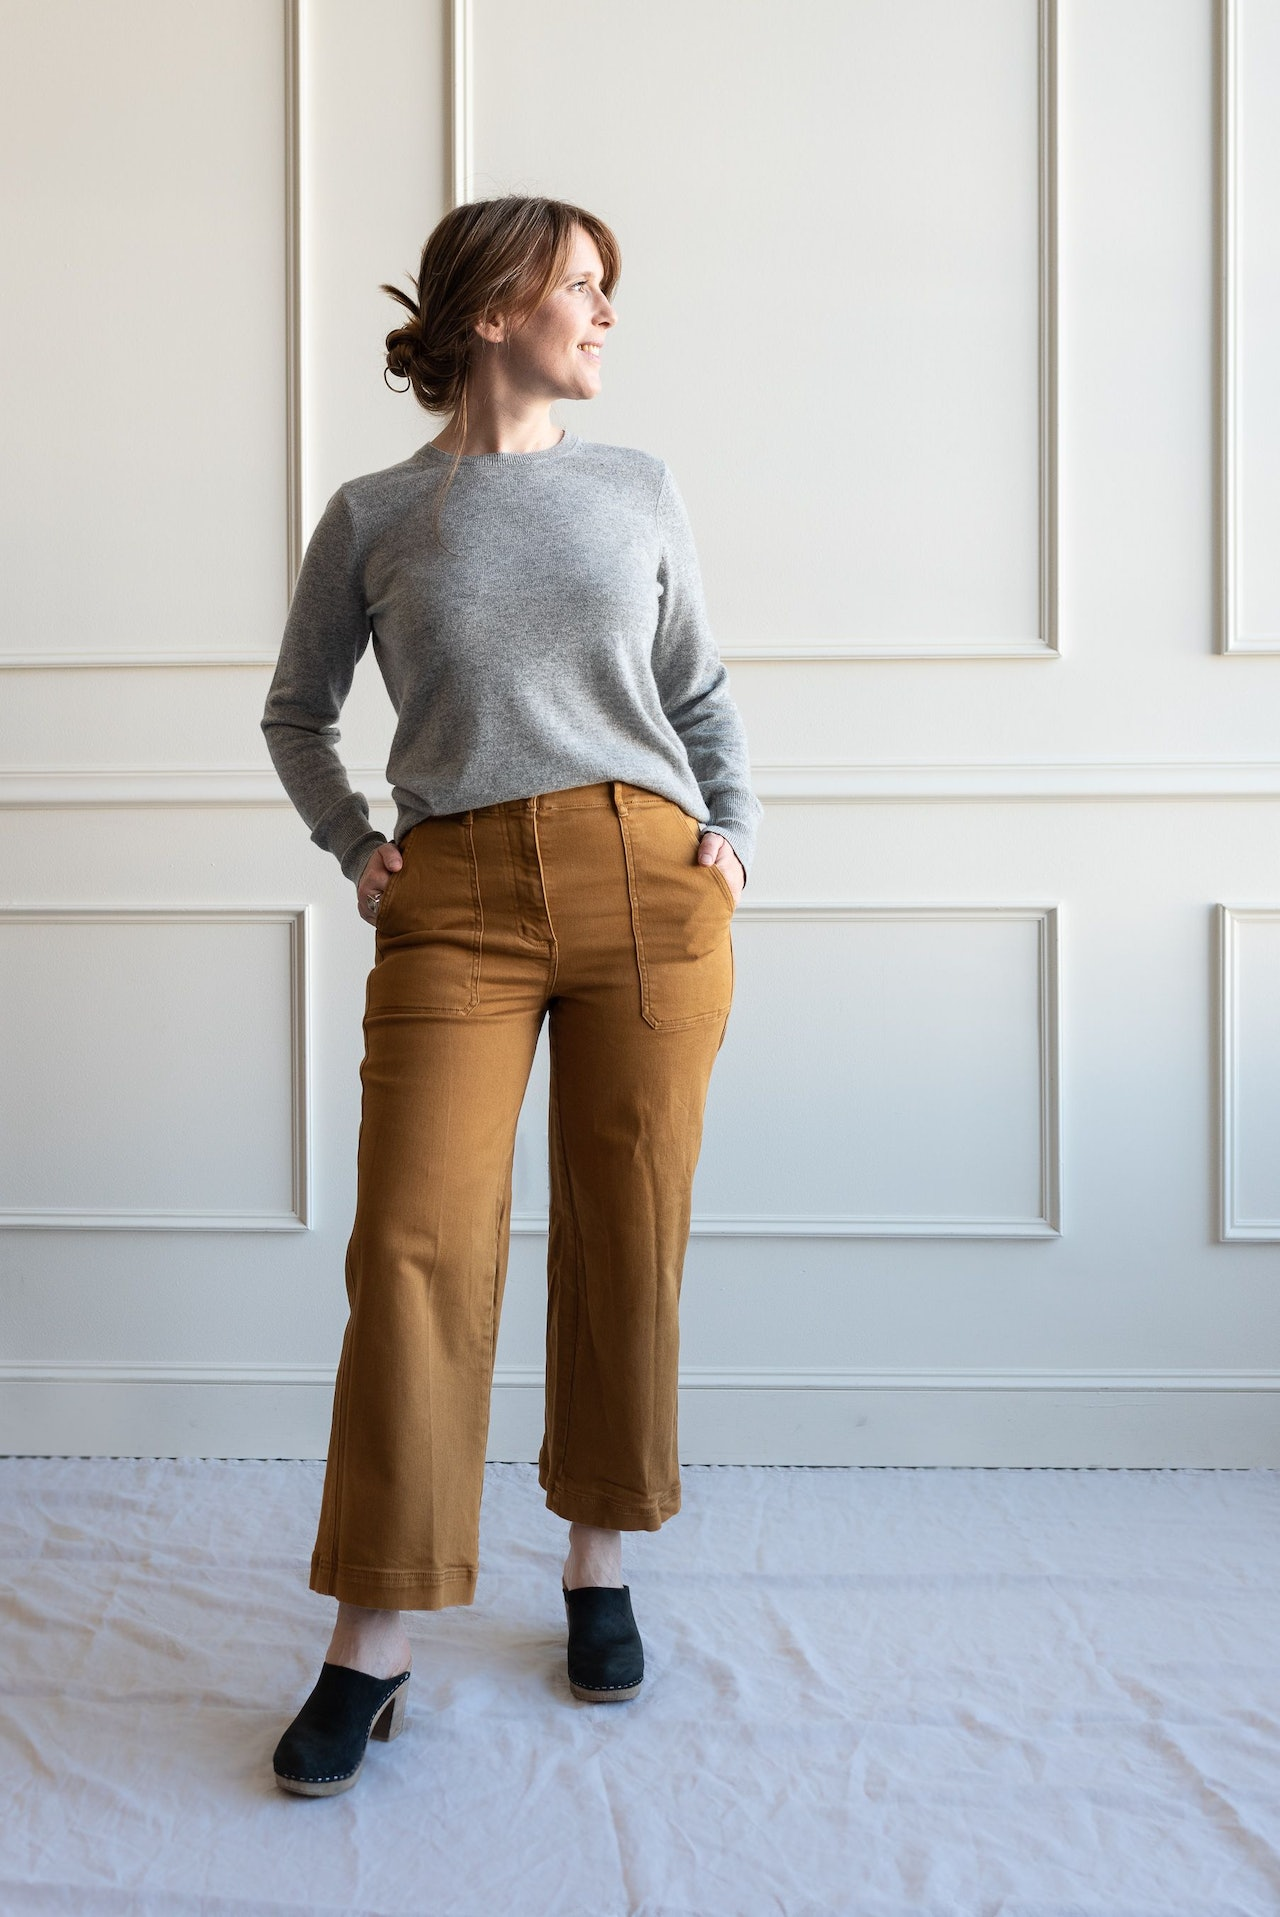 Fall 10x10 Day 5 Look - Everlane Utility Pants in Golden Brown & Cashmere Crew Sweater in Heather Grey by Conscious by Chloé